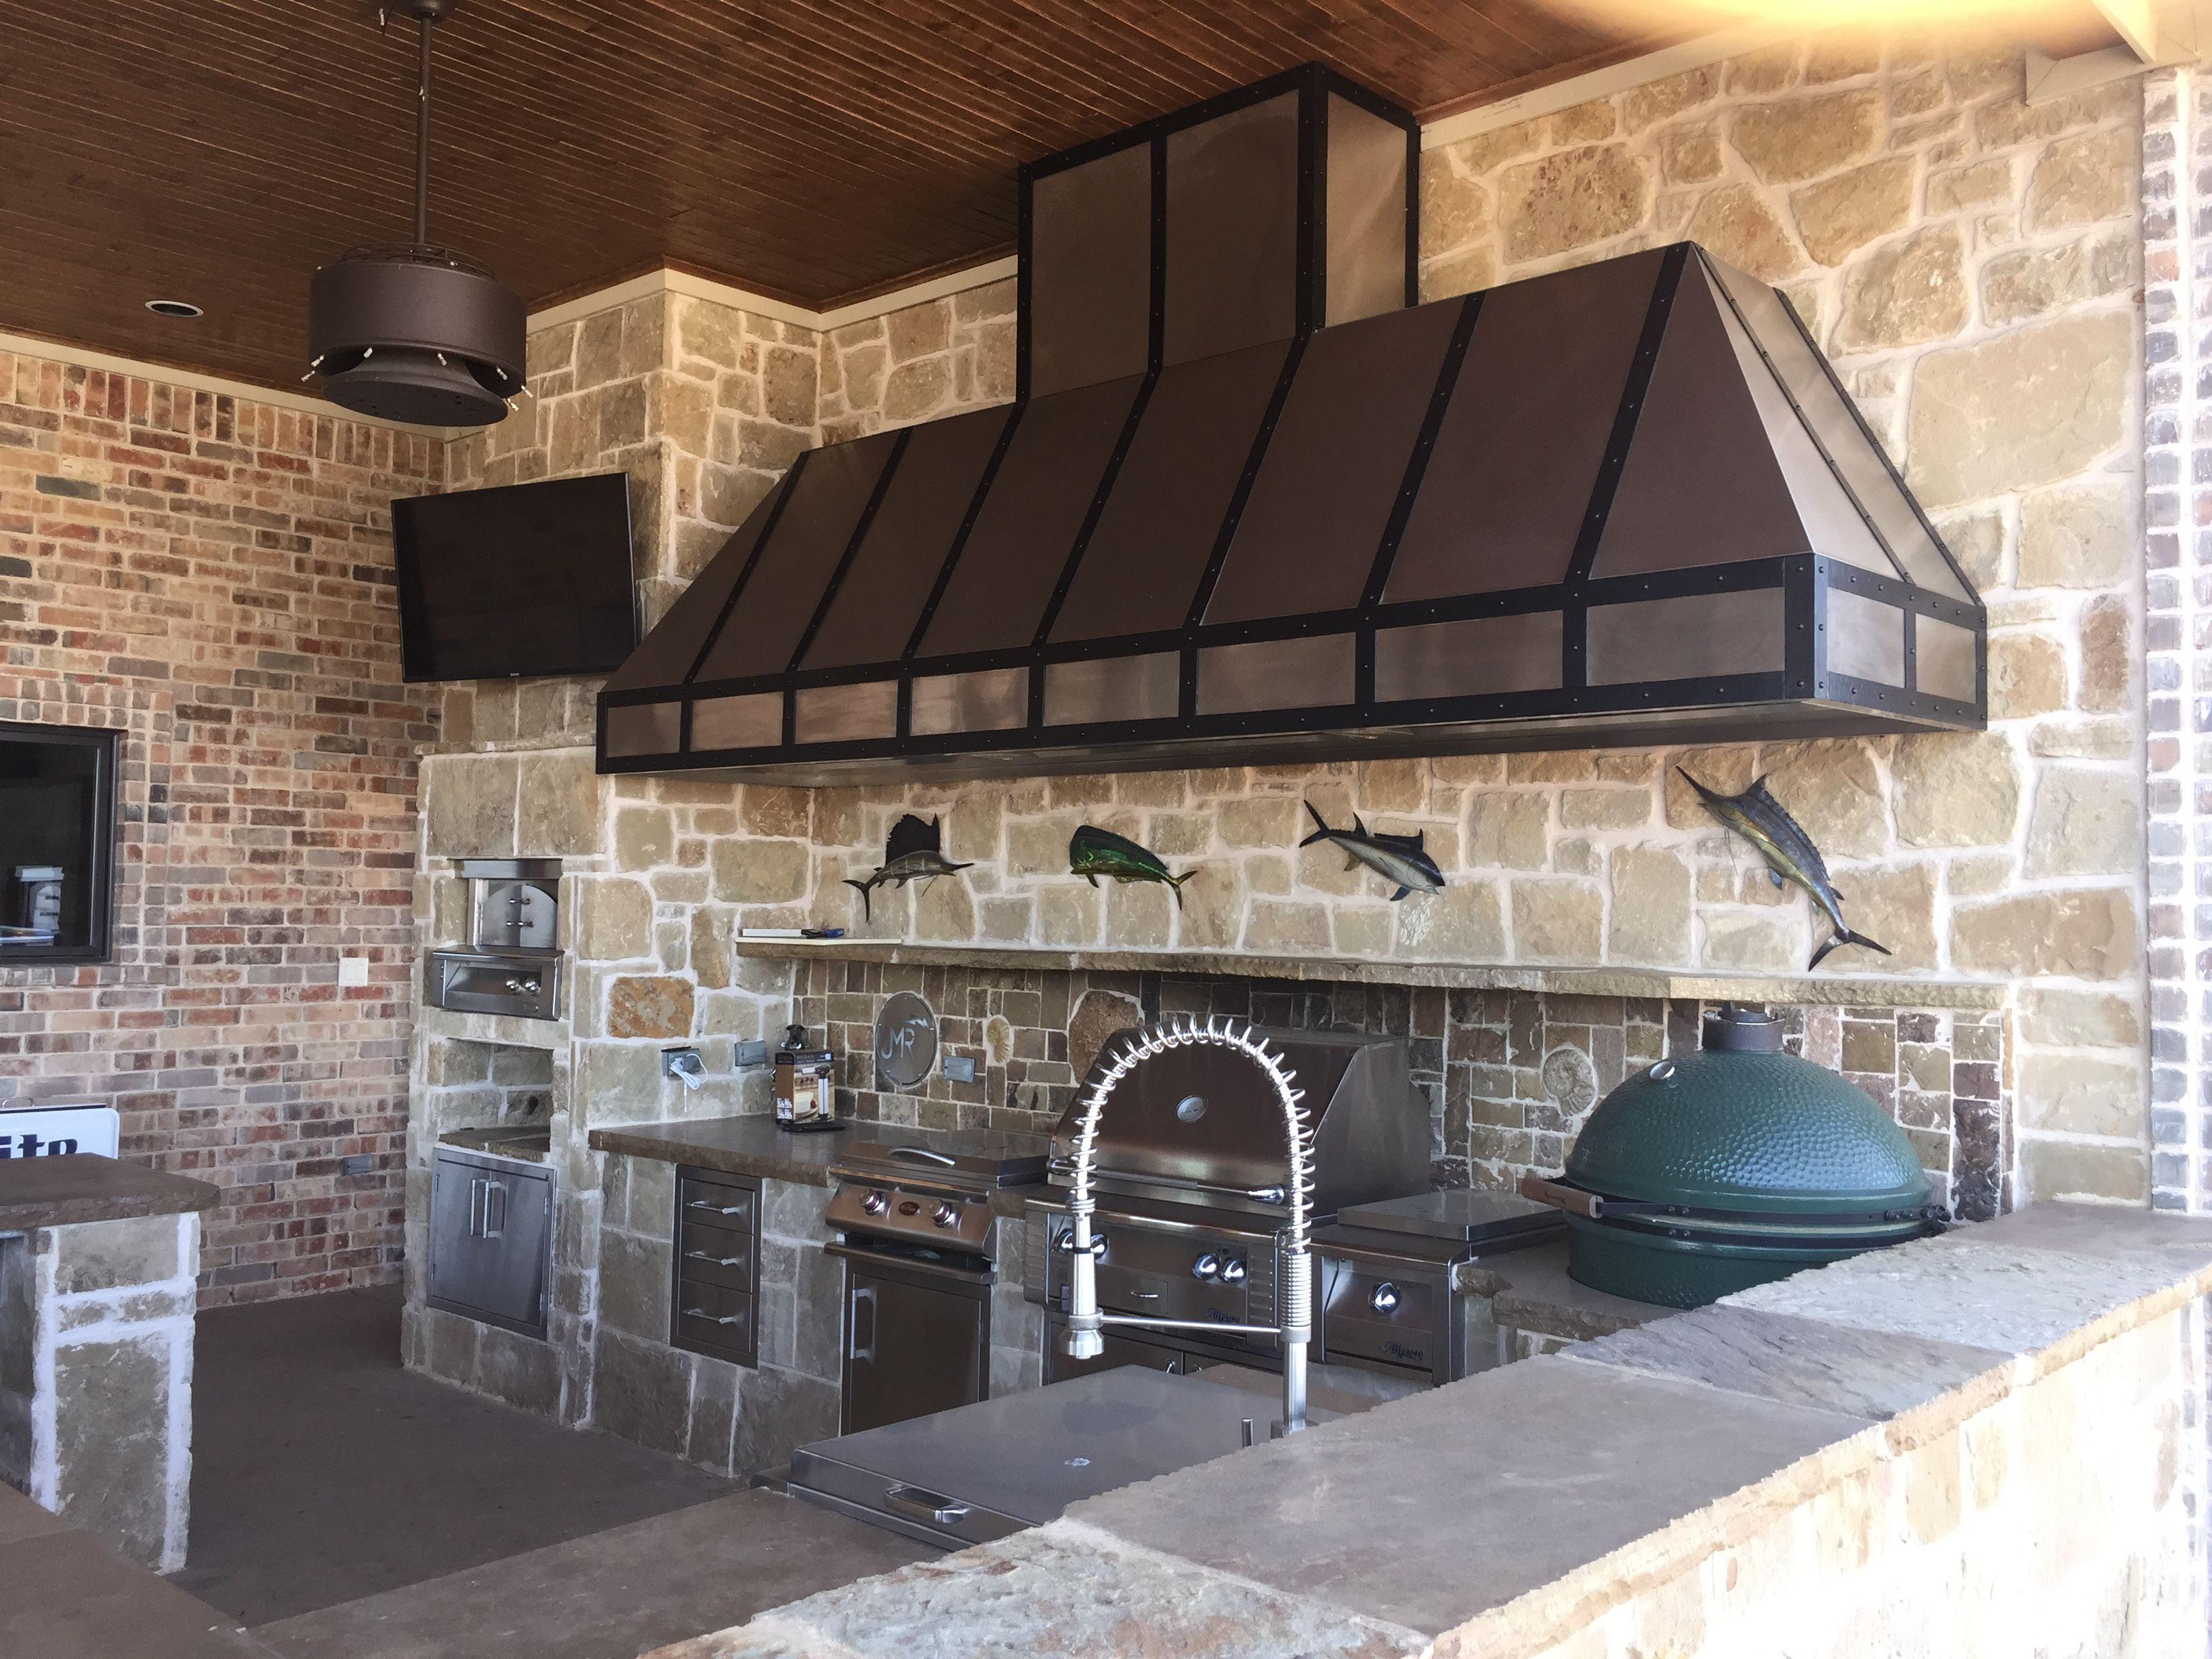 Outdoor Kitchen Exhaust Hoods Corner Cabinets Hand Crafted Custom Brushed Finish Stainless Steel Vent